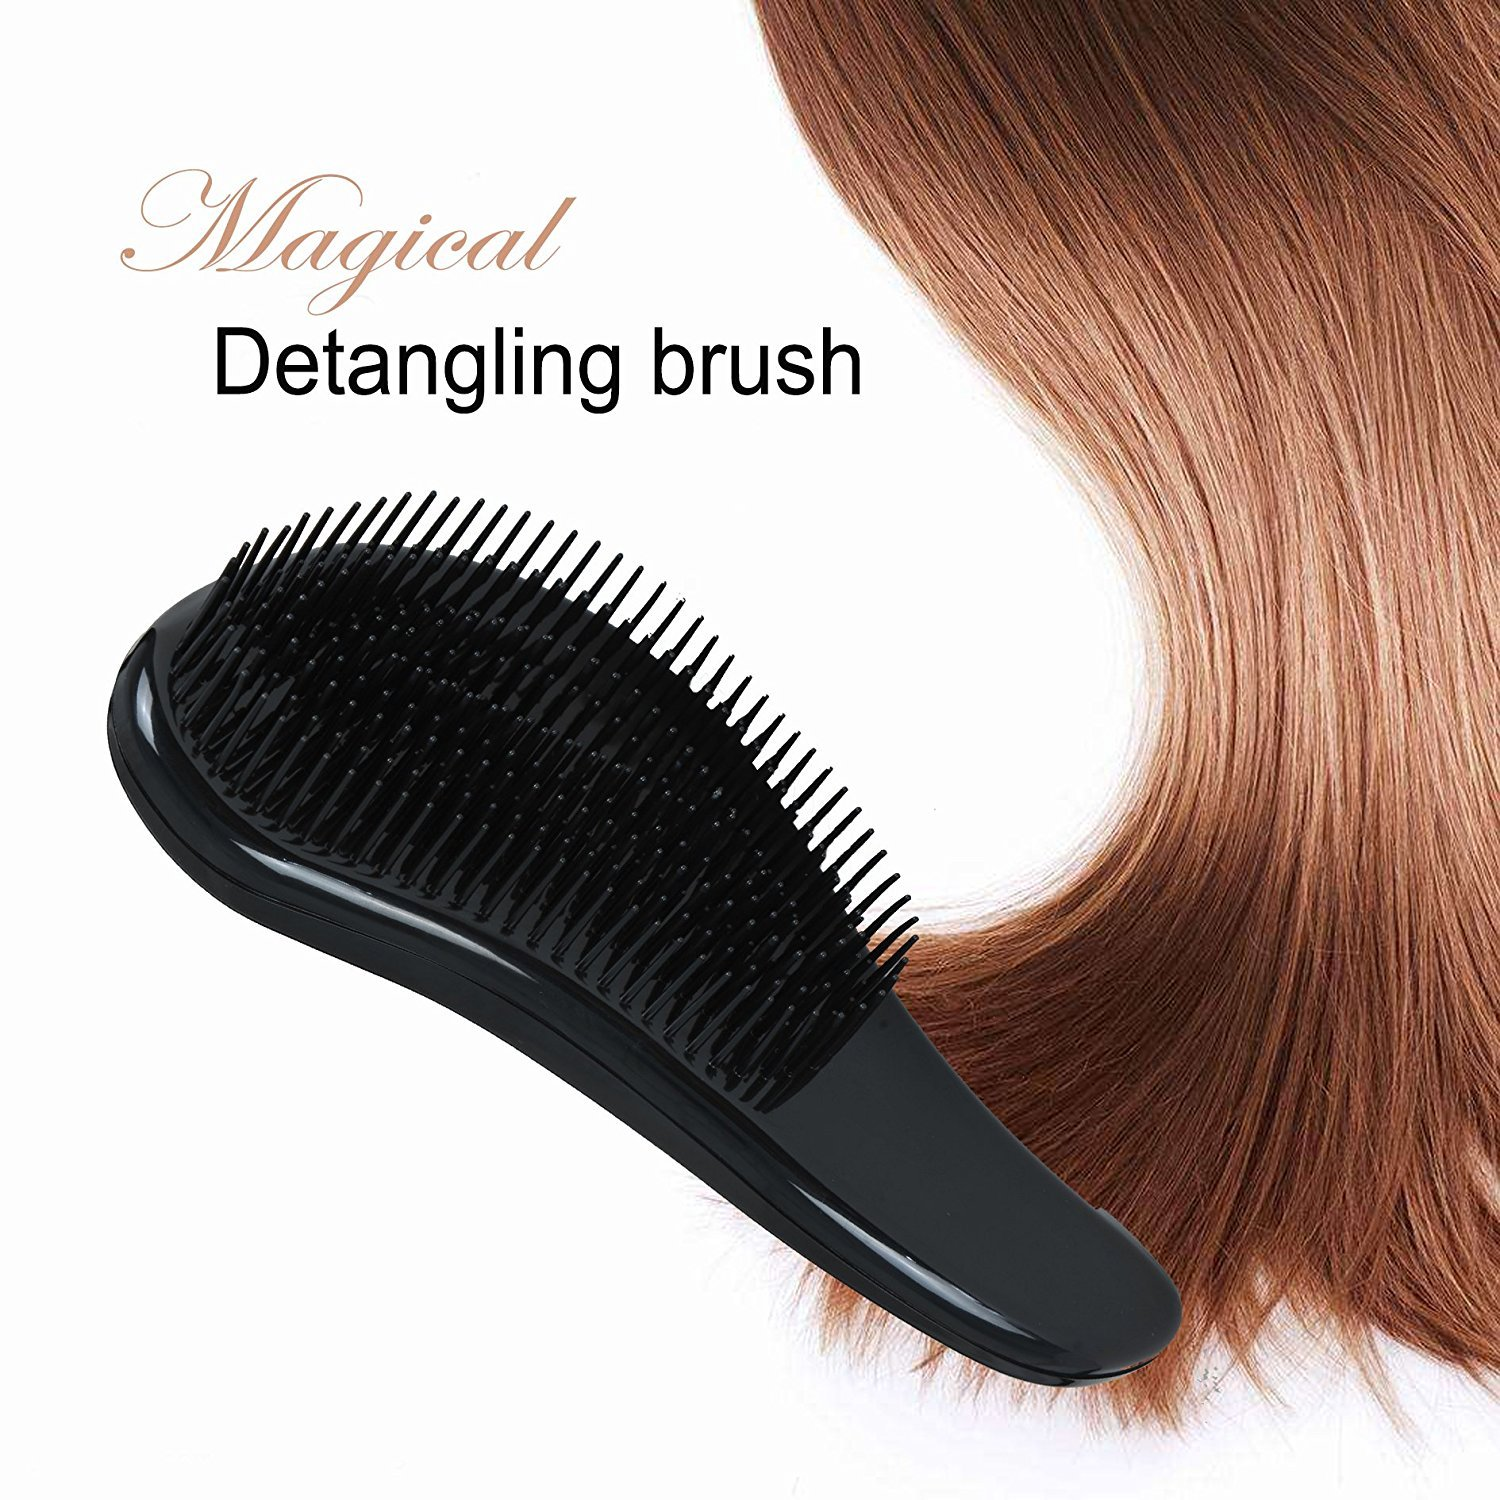 Angel-Flipped Detangling Brush, Glide the Detangler Through Tangled Hair Lightweight Attractive and Durable Comb or Brush, for Women, Girls, Men and Boys, Use in Dry and Wet Hair with Box(black)